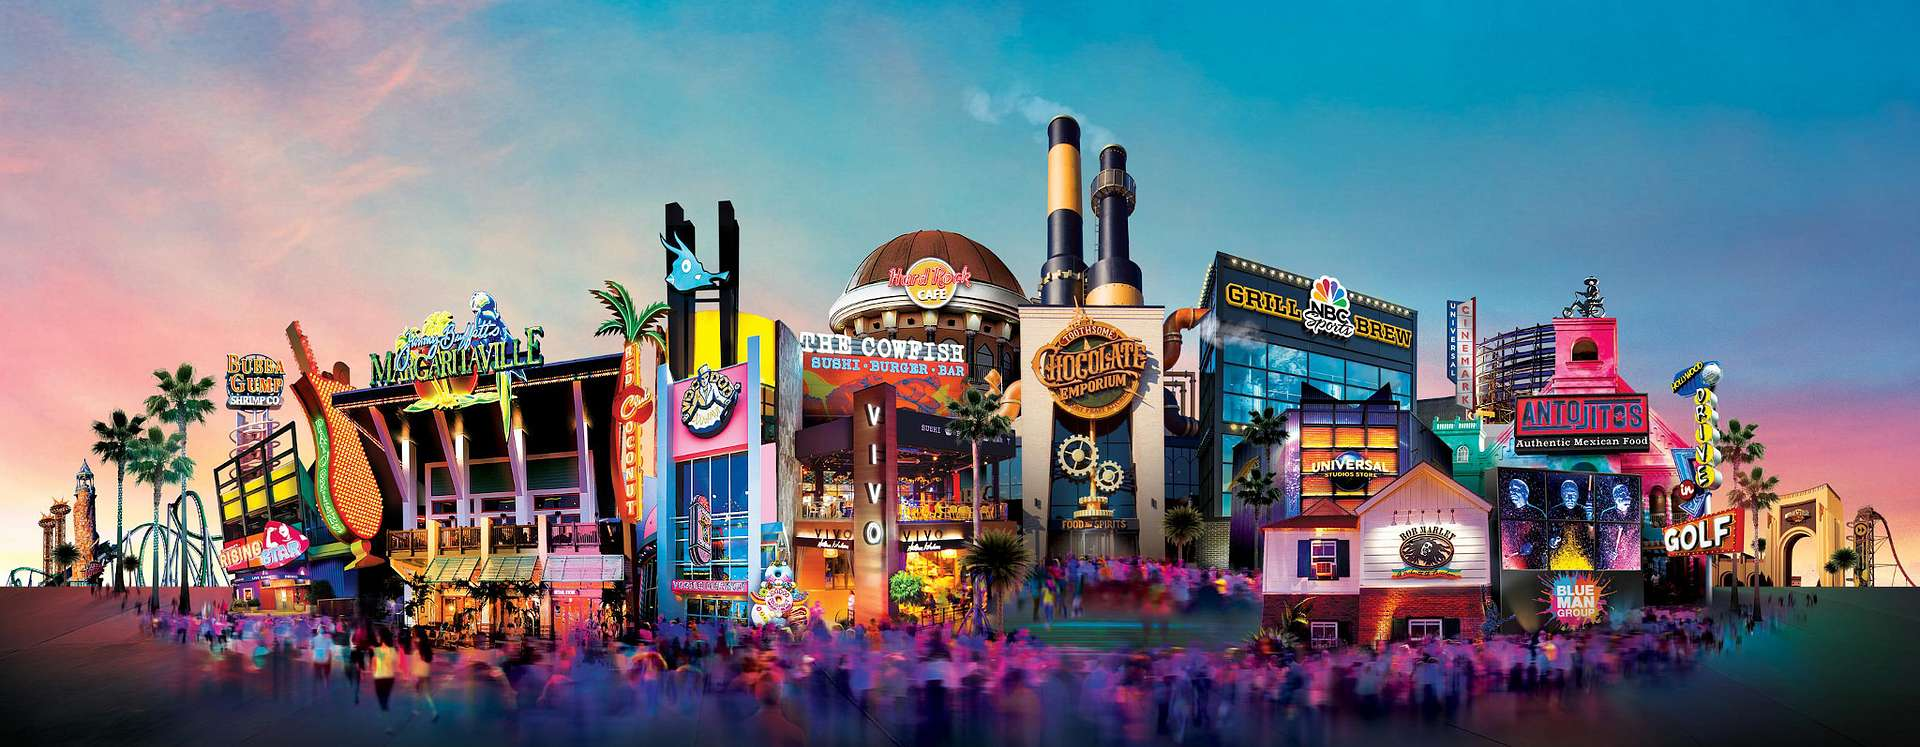 5 Foodie Favorites At Citywalk Universal Orlando Resort